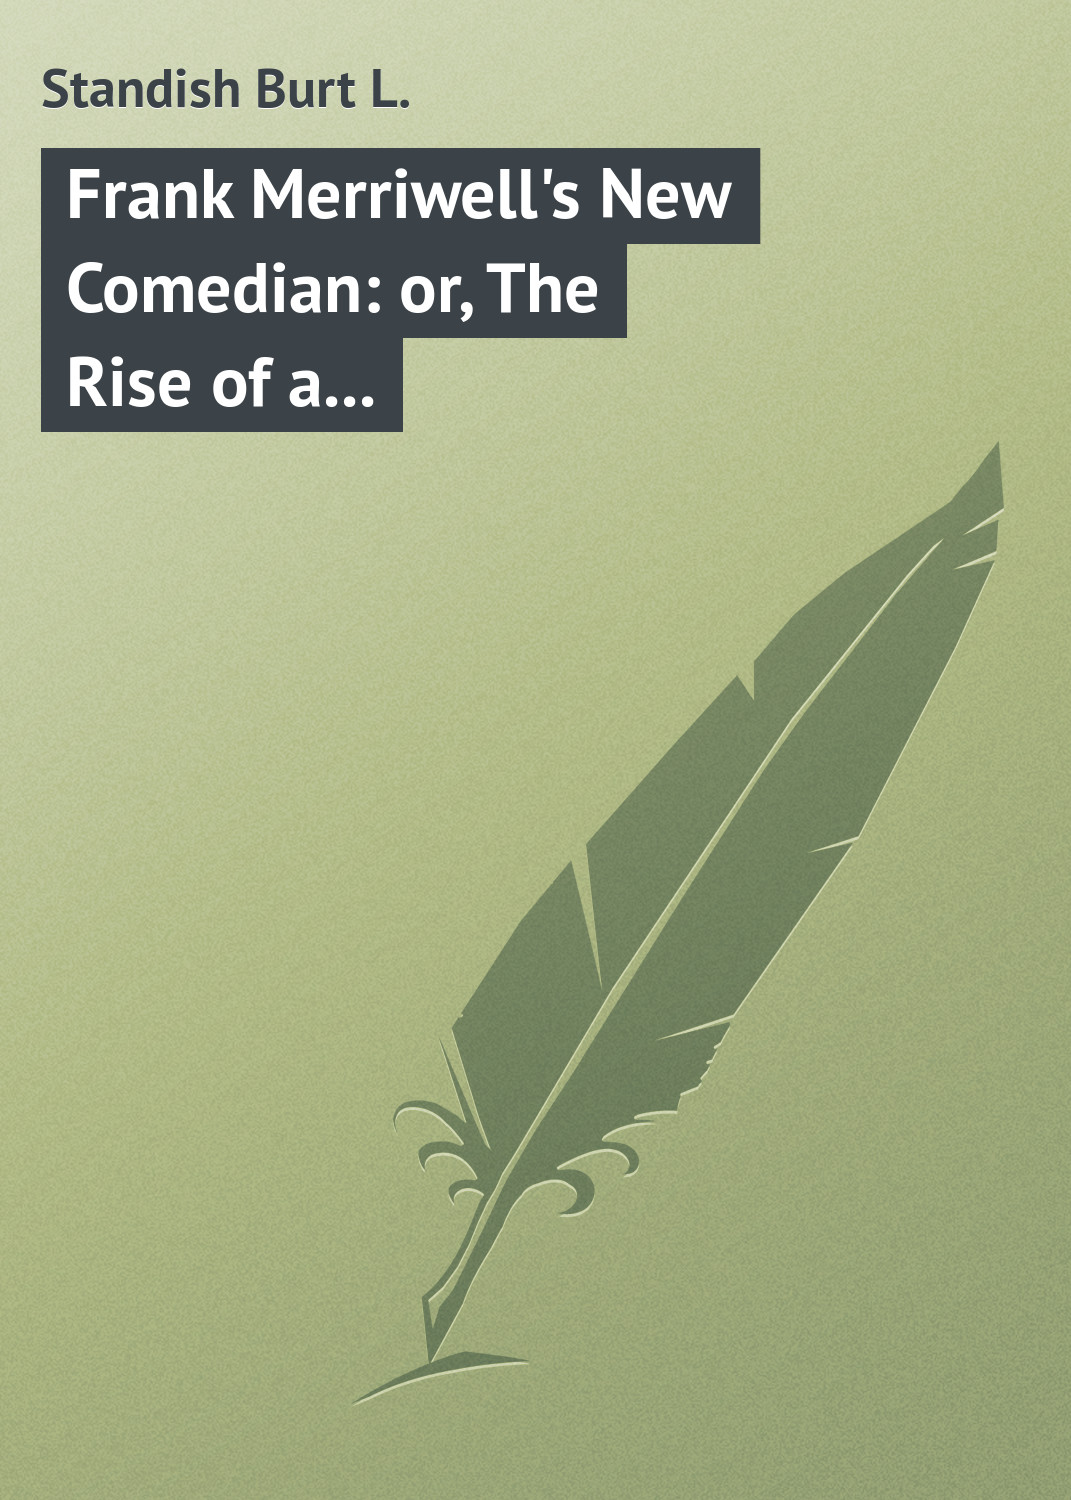 где купить Standish Burt L. Frank Merriwell's New Comedian: or, The Rise of a Star по лучшей цене